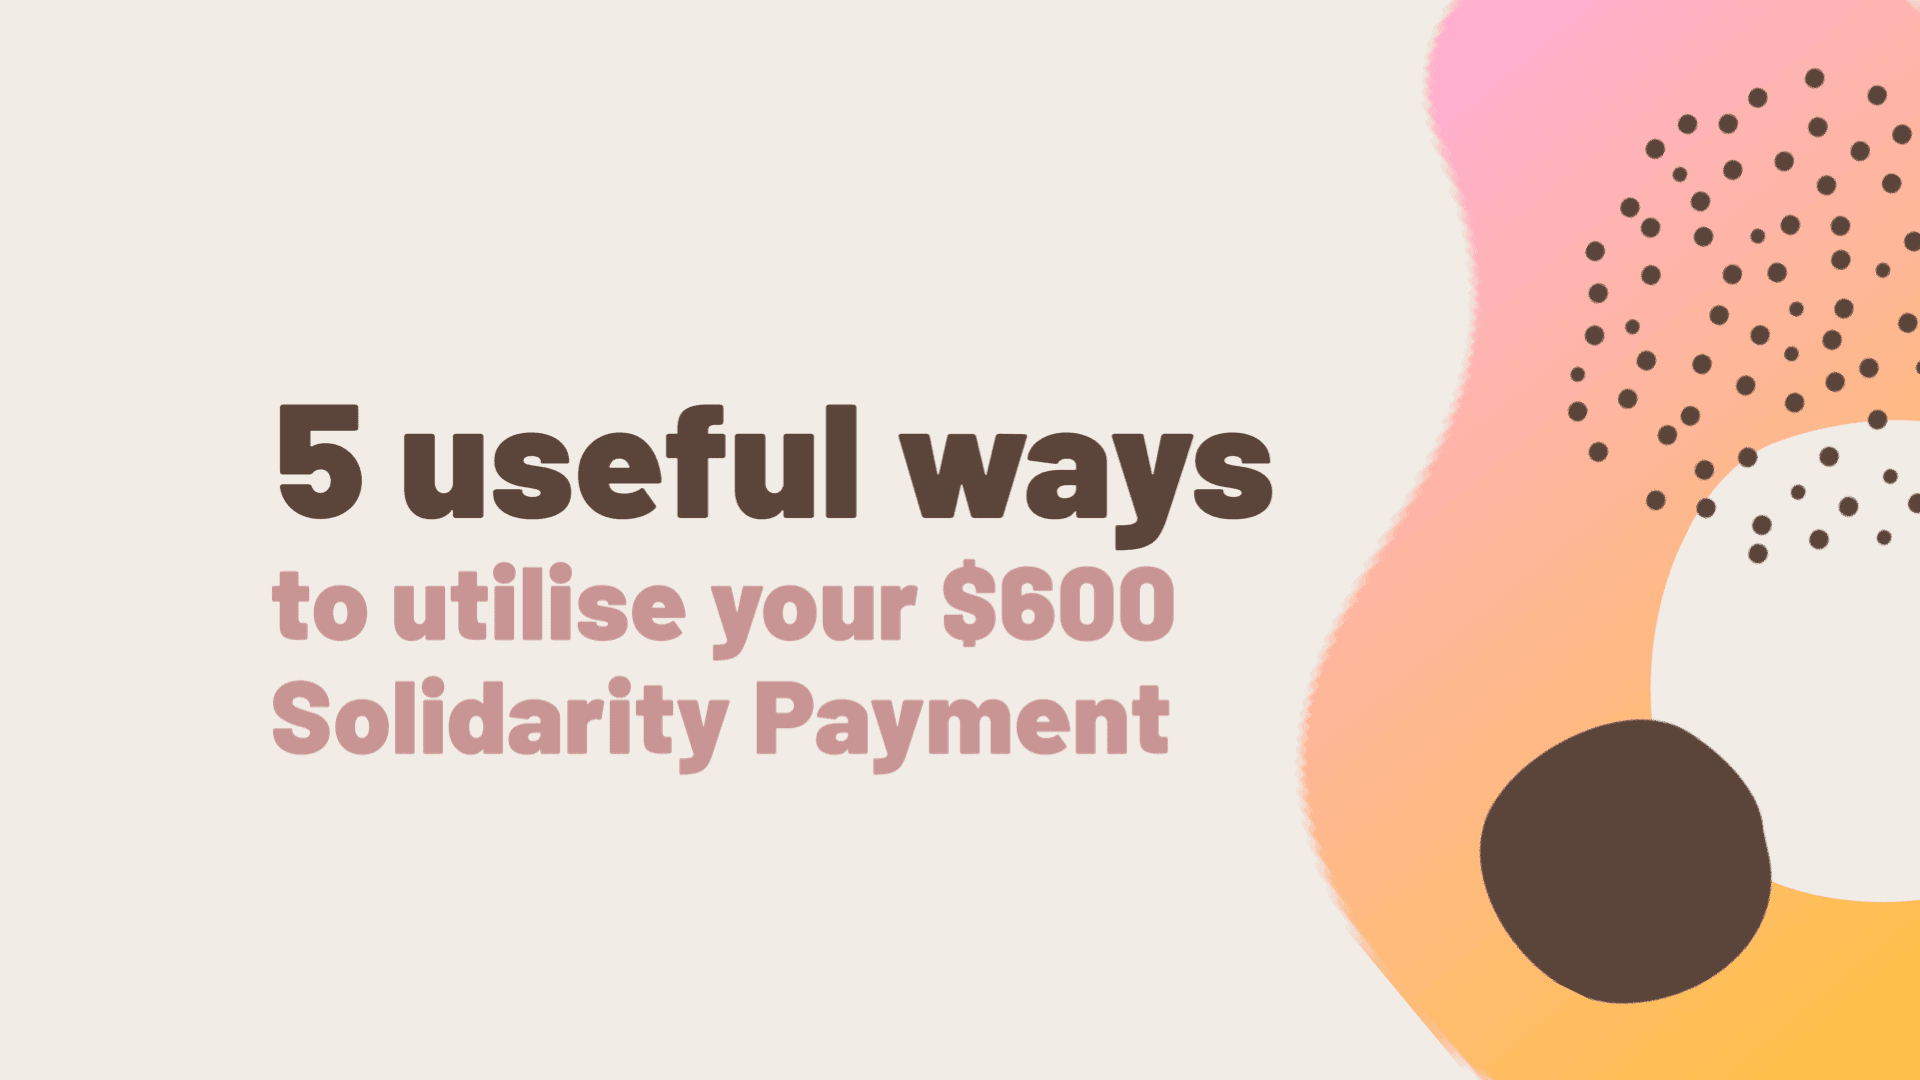 5 useful ways to utilise your S$600 Solidarity Payment